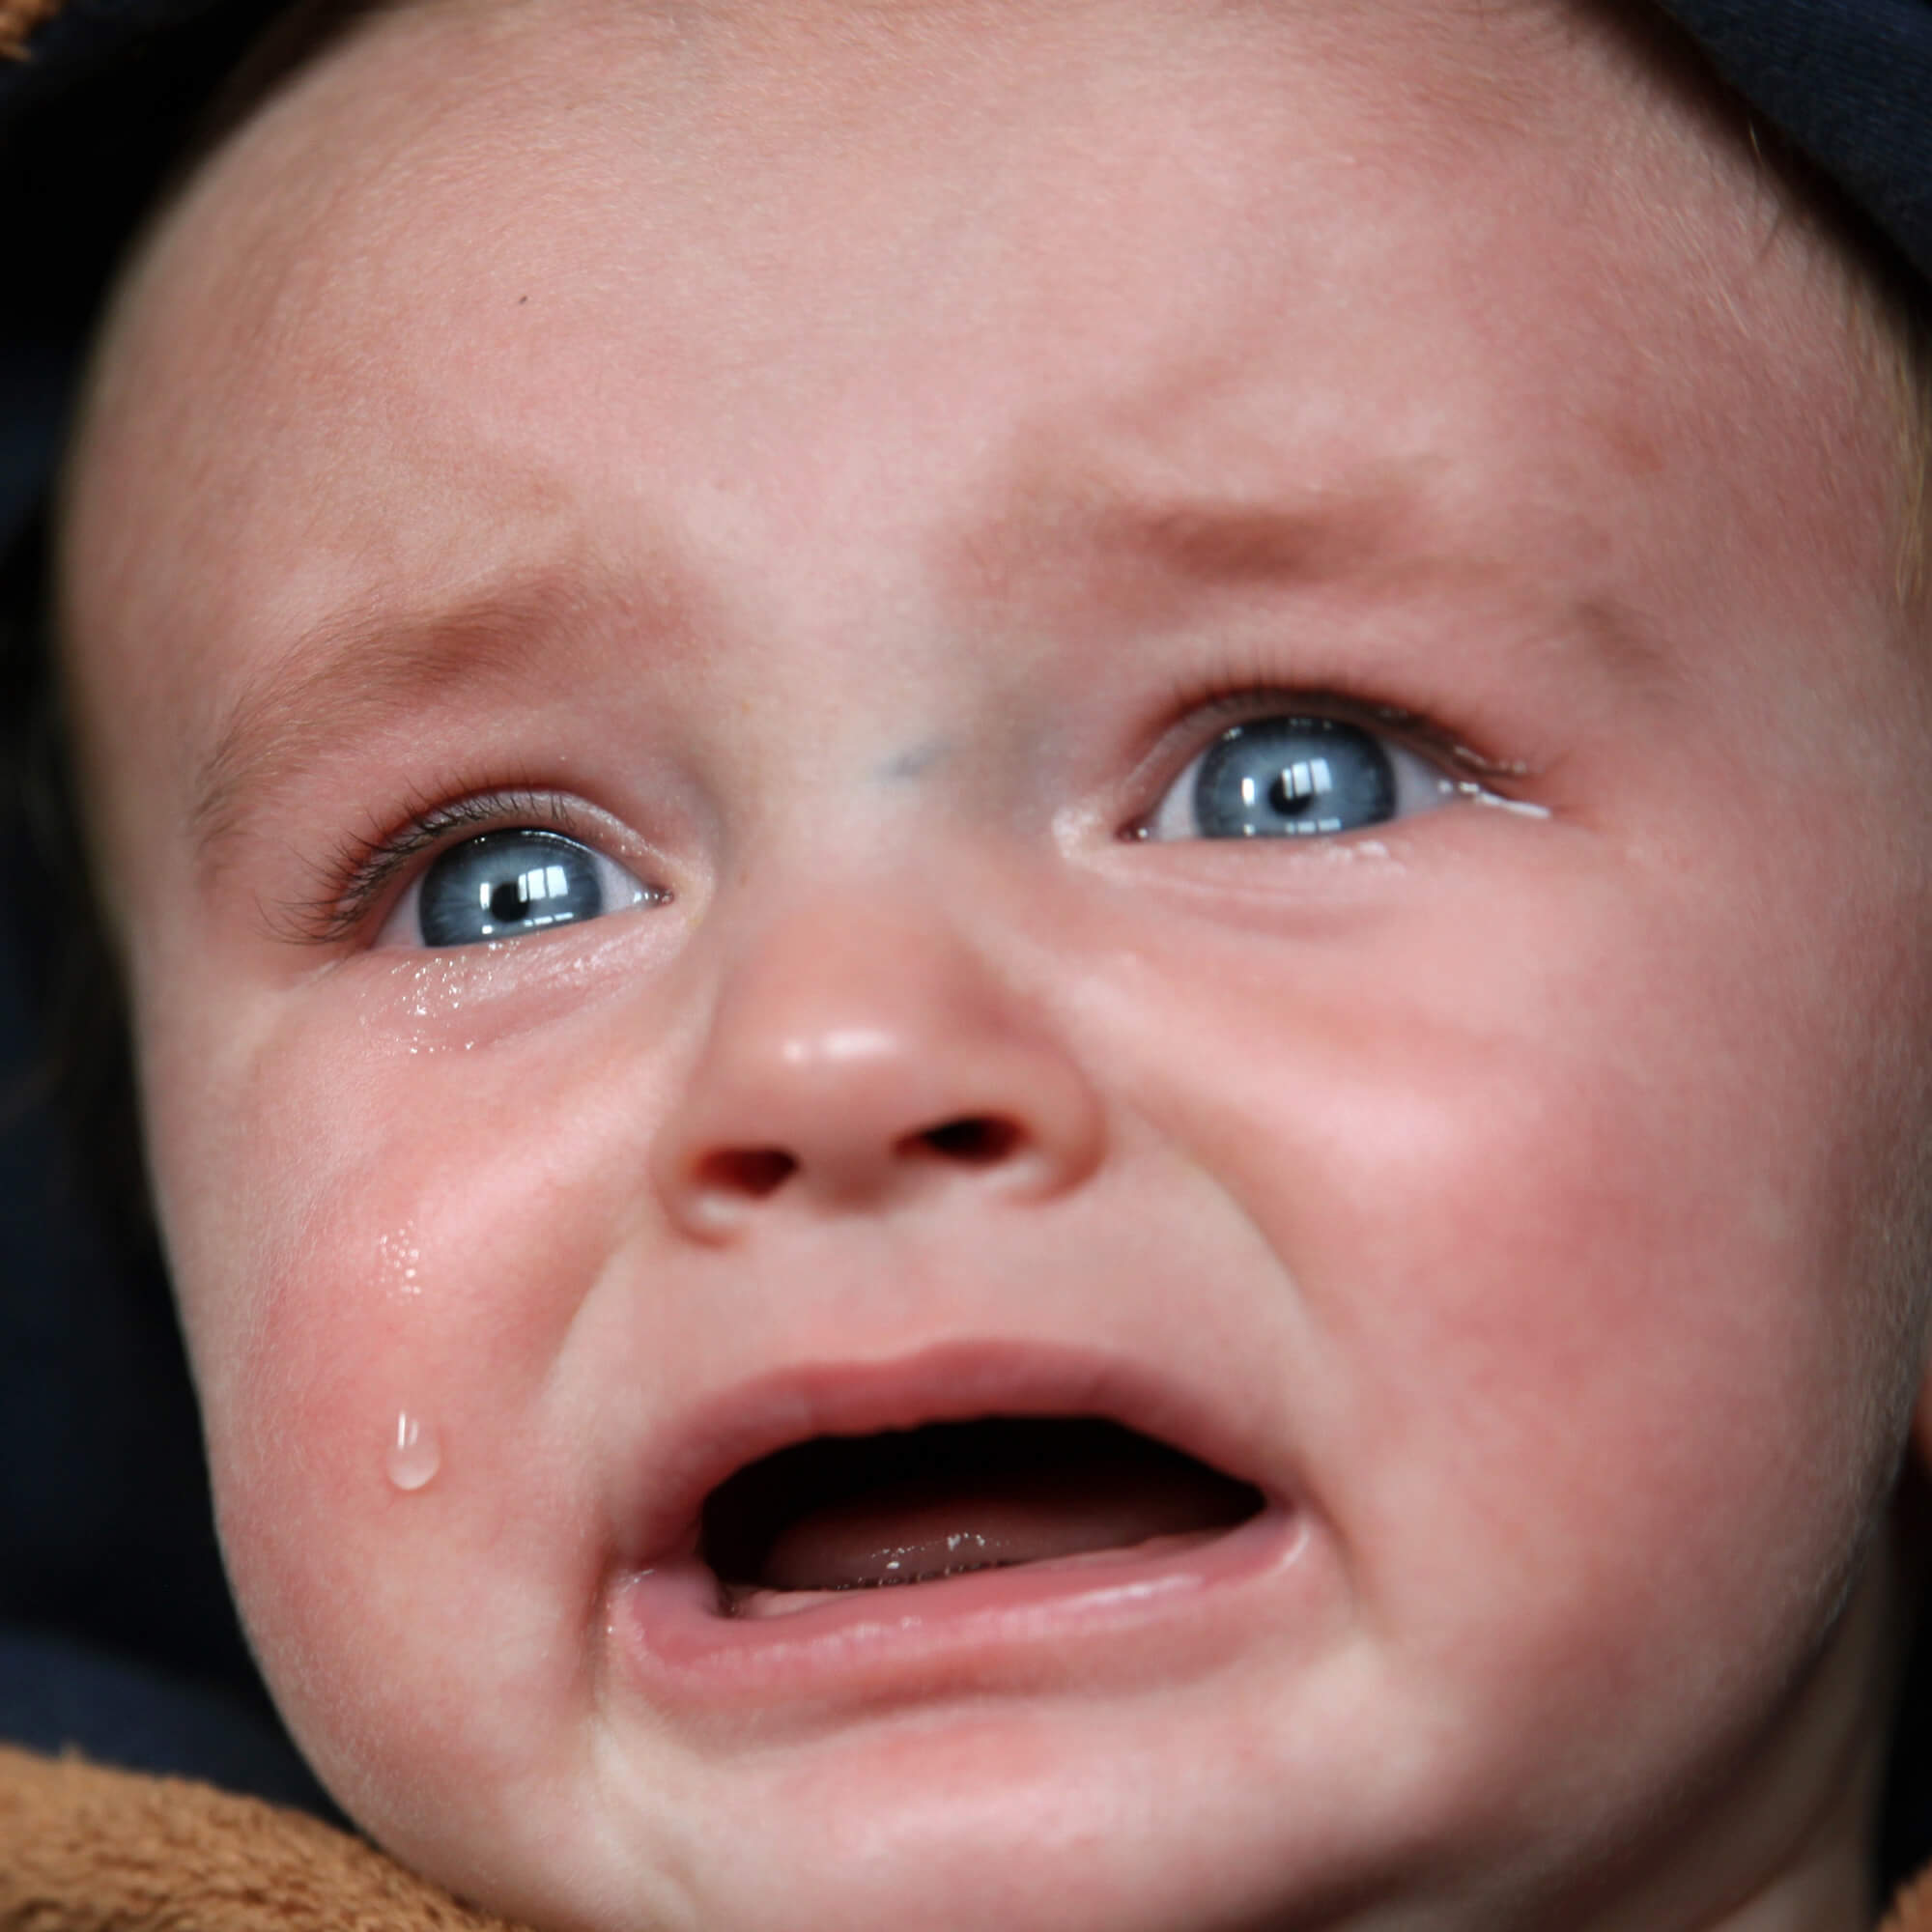 baby-child-close-up-crying-47090